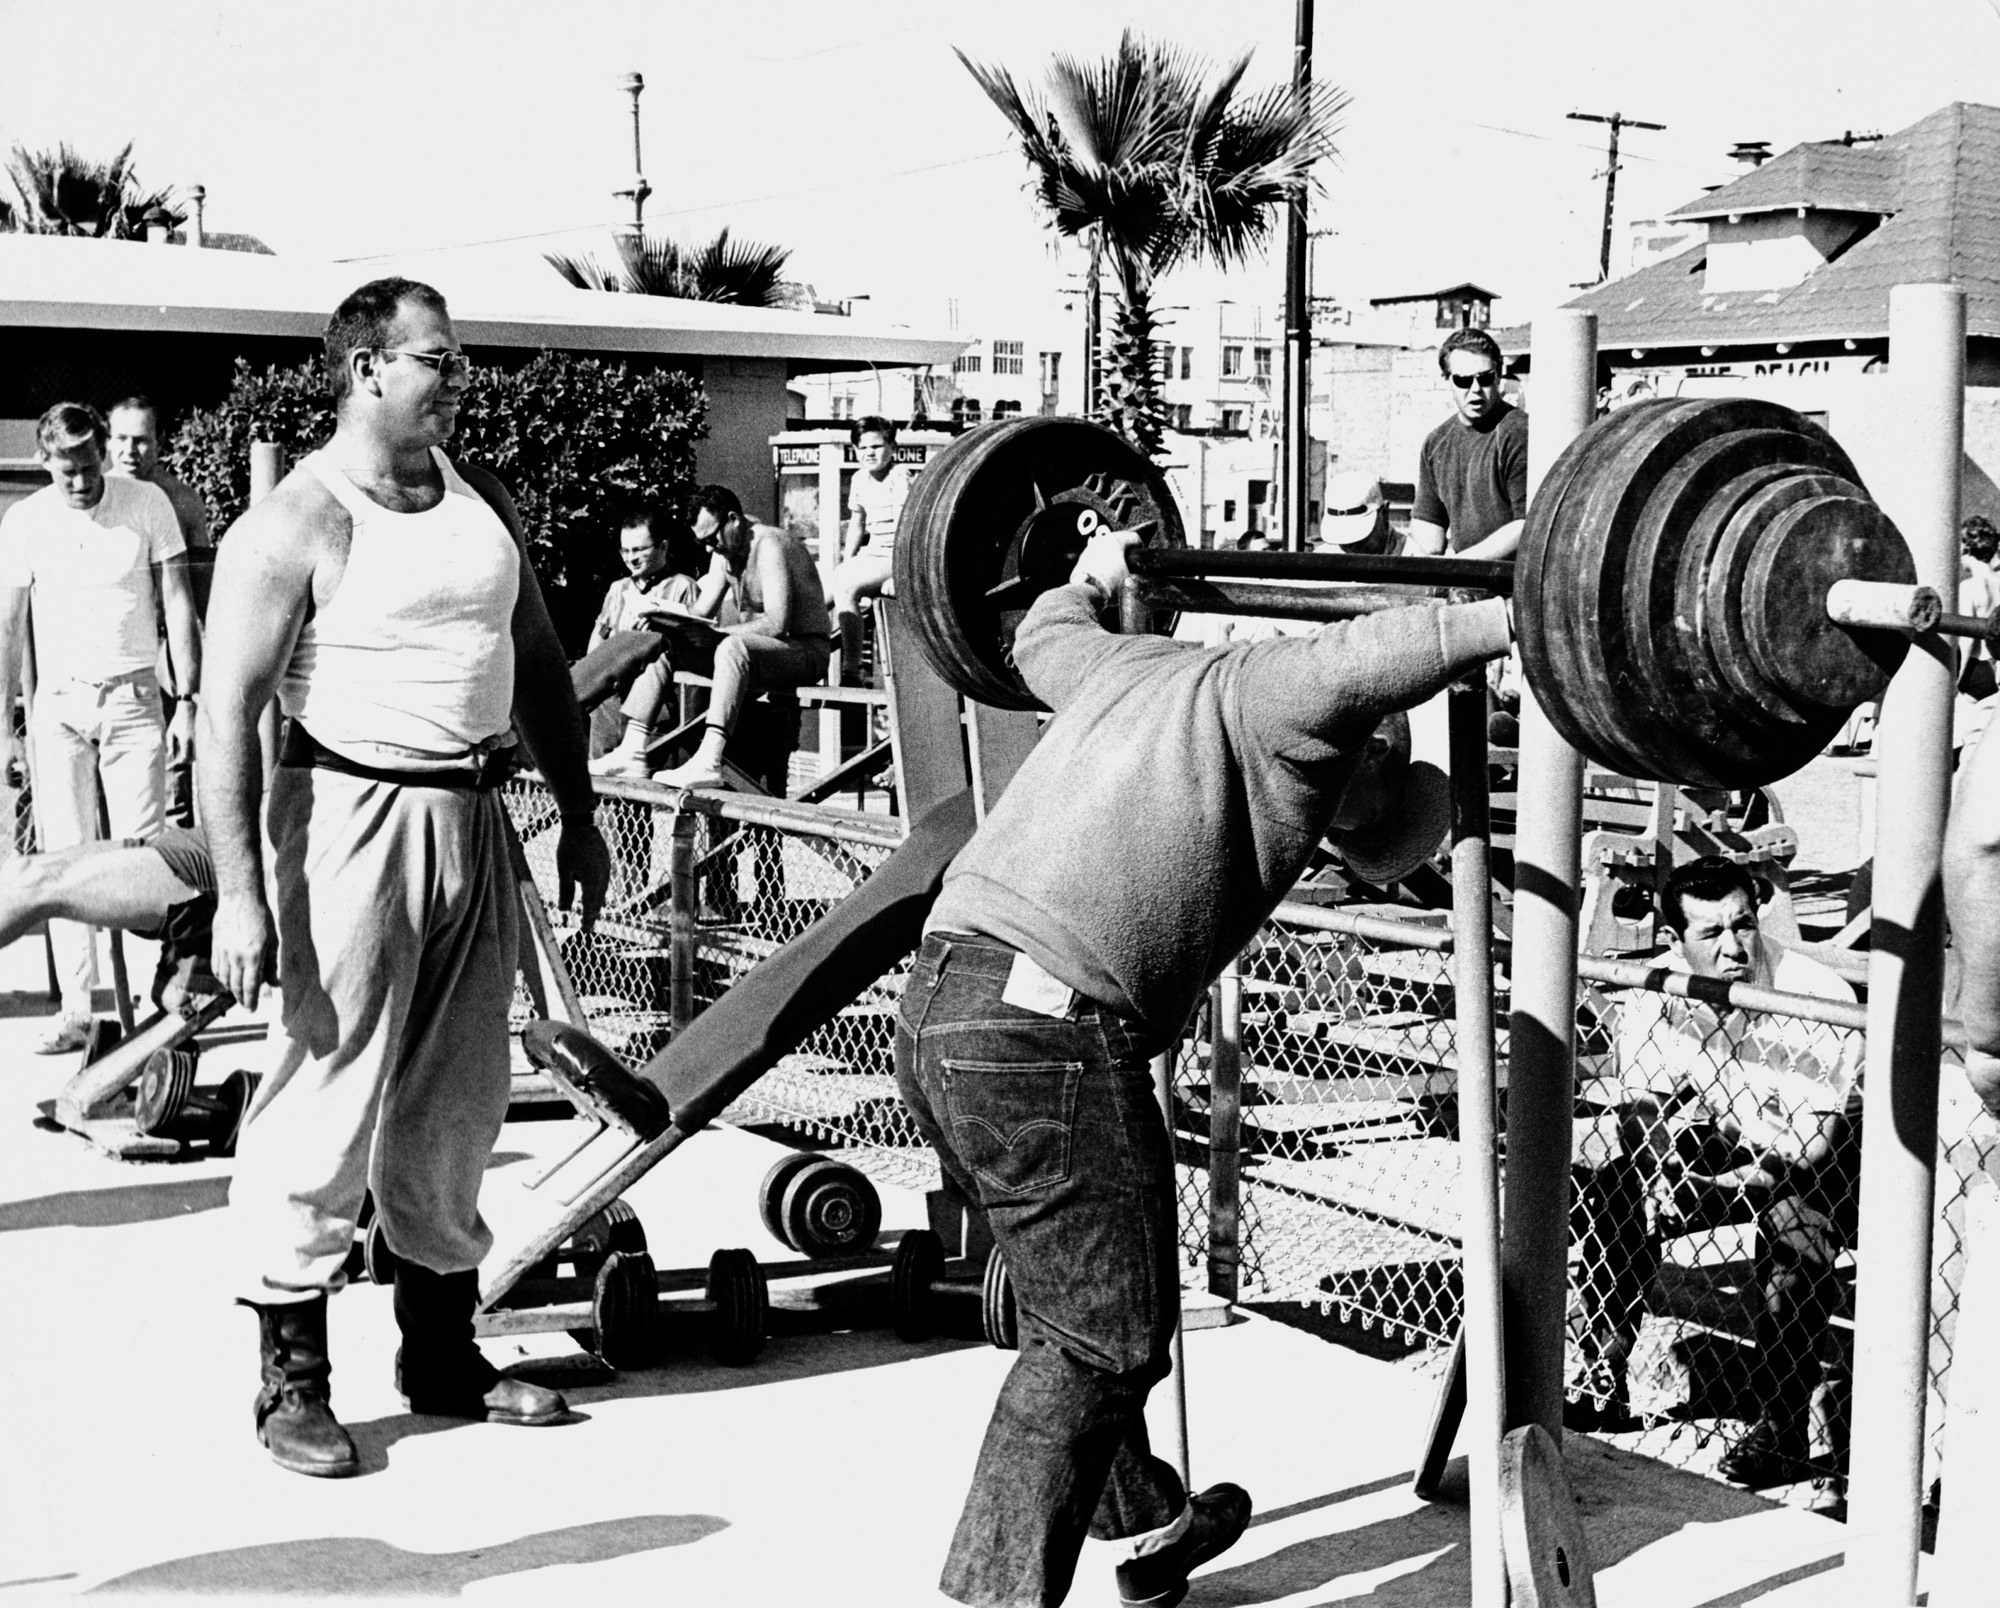 Oliver Sacks stands to the left, taking in the scene on the lifting platform at Venice Beach. Photo courtesy of the Oliver Sacks Foundation.